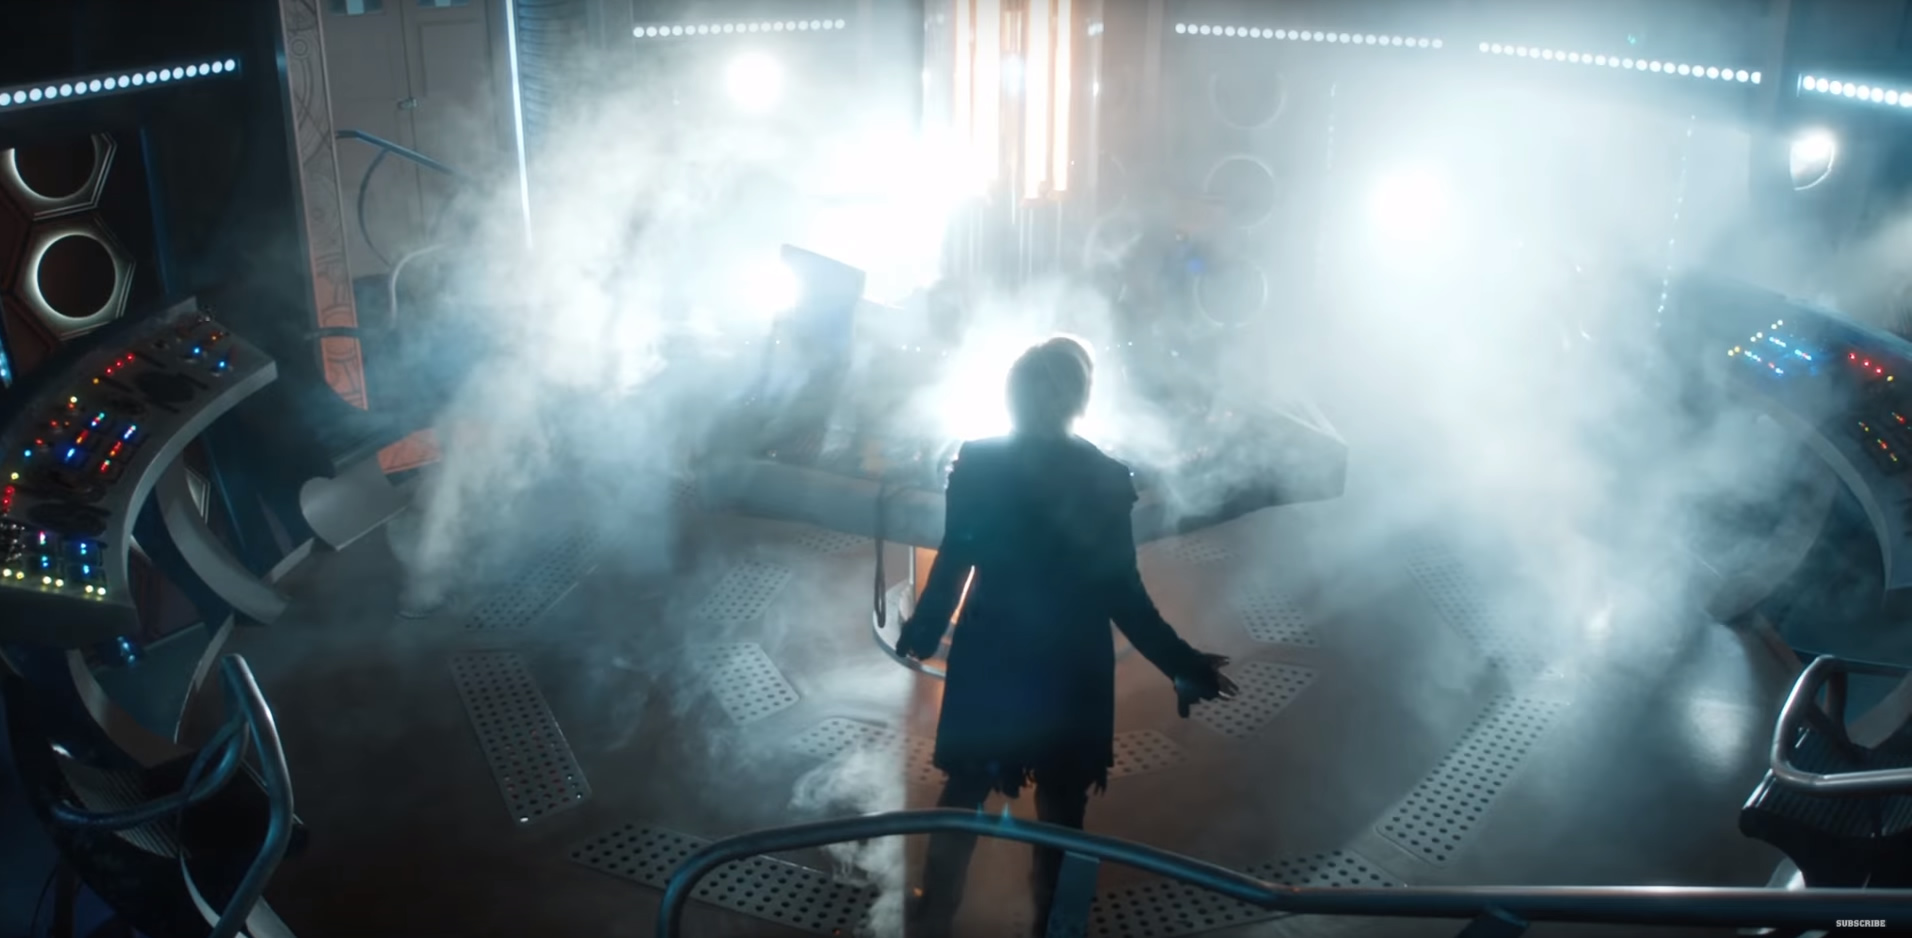 Doctor Who: as Peter Capaldi leaves, what can we expect from Jodie Whittaker?